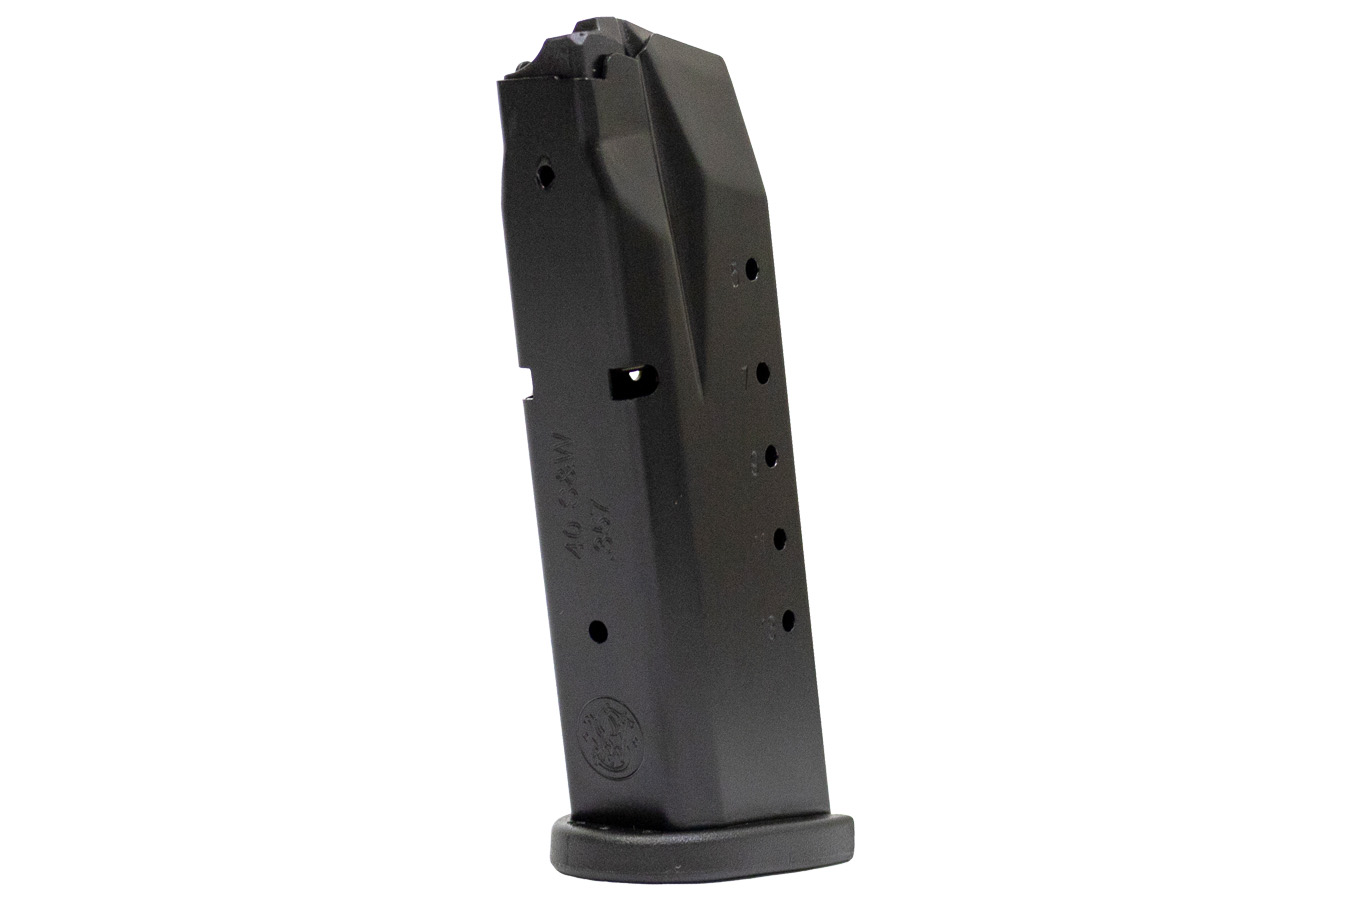 SMITH AND WESSON MP40 M2.0 COMPACT 40SW 13-ROUND MAGAZINE